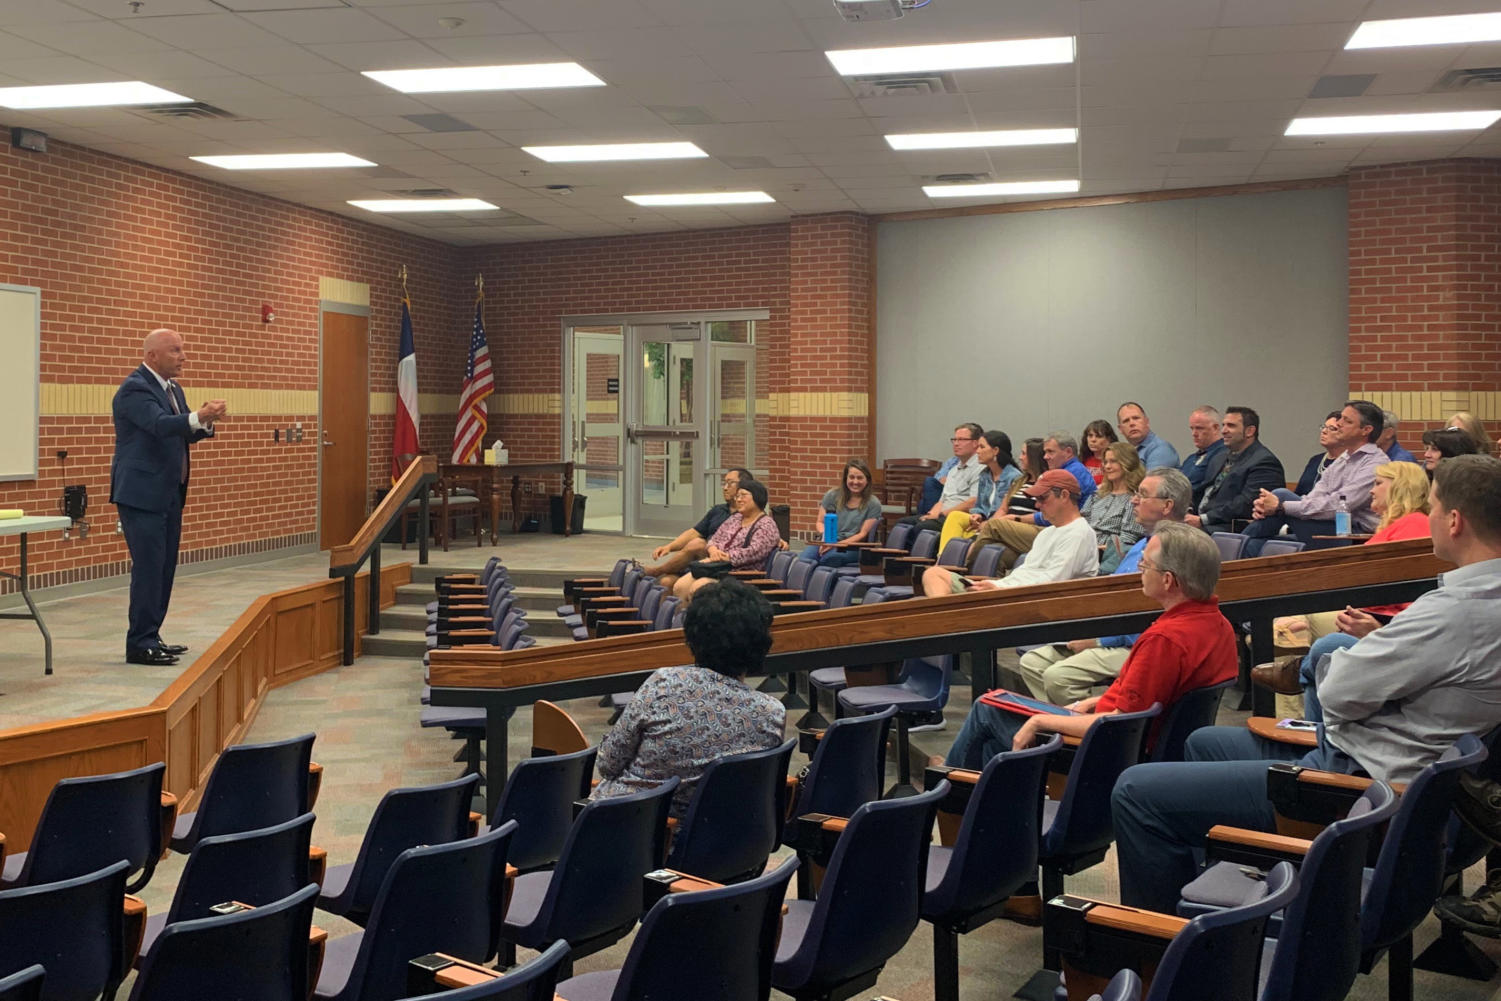 JG Consultants was chosen to conduct the district's superintendent search following Ted Moore's resignation in February.